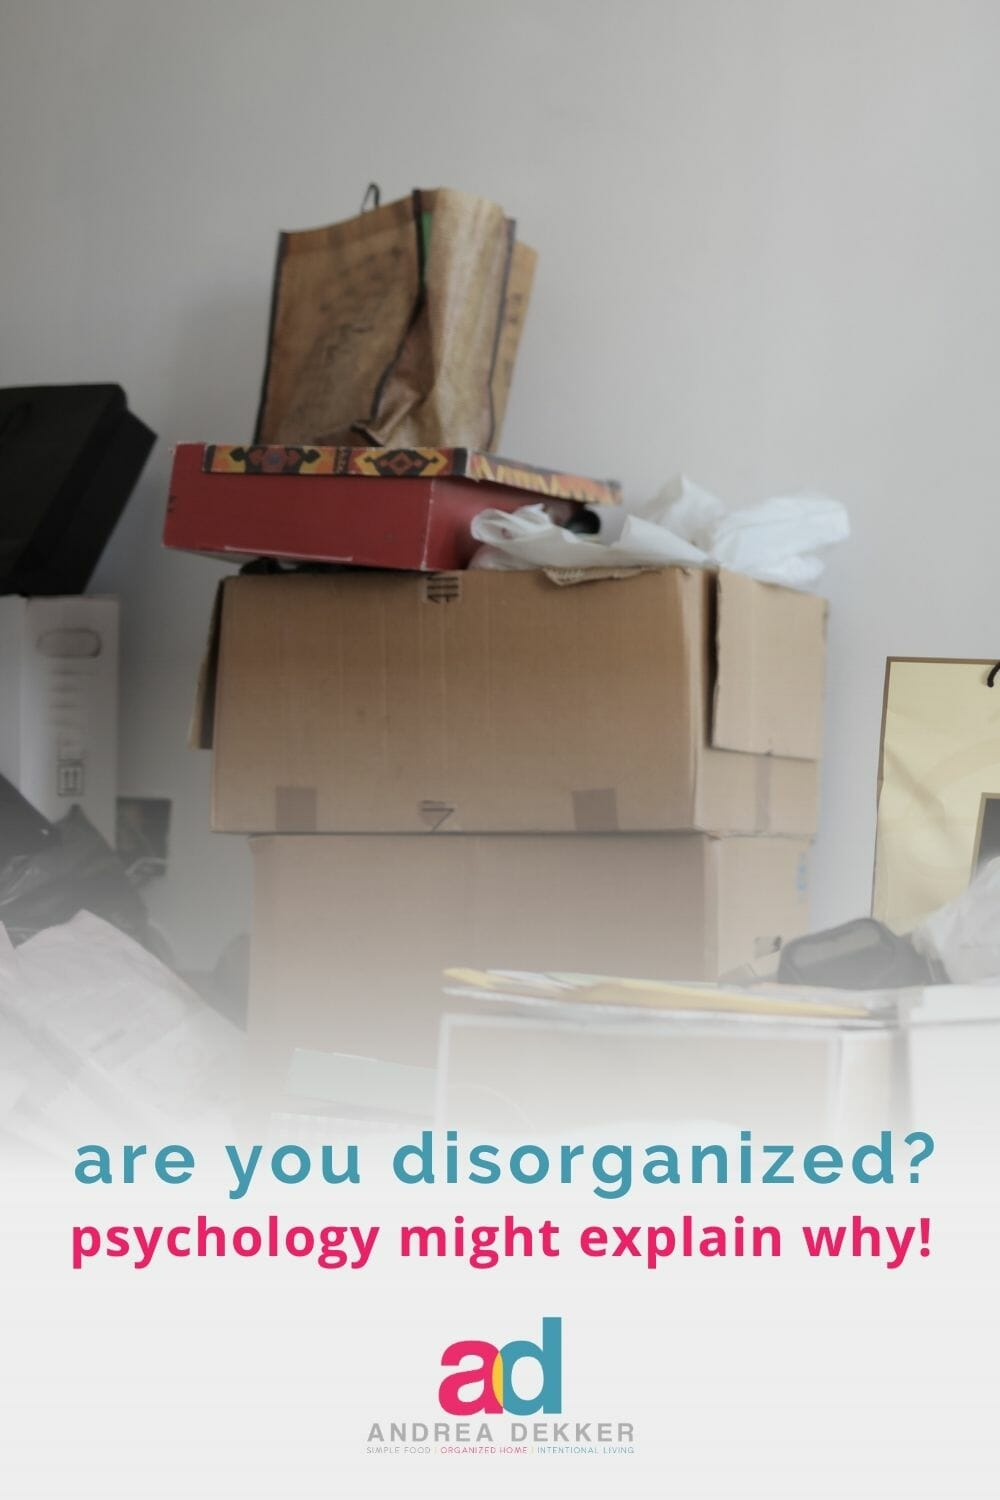 Have you tried and failed to get more organized, streamline your schedule, or simplify your life? Interestingly enough, psychology sheds some light on a deeper reason for disorganization! via @andreadekker